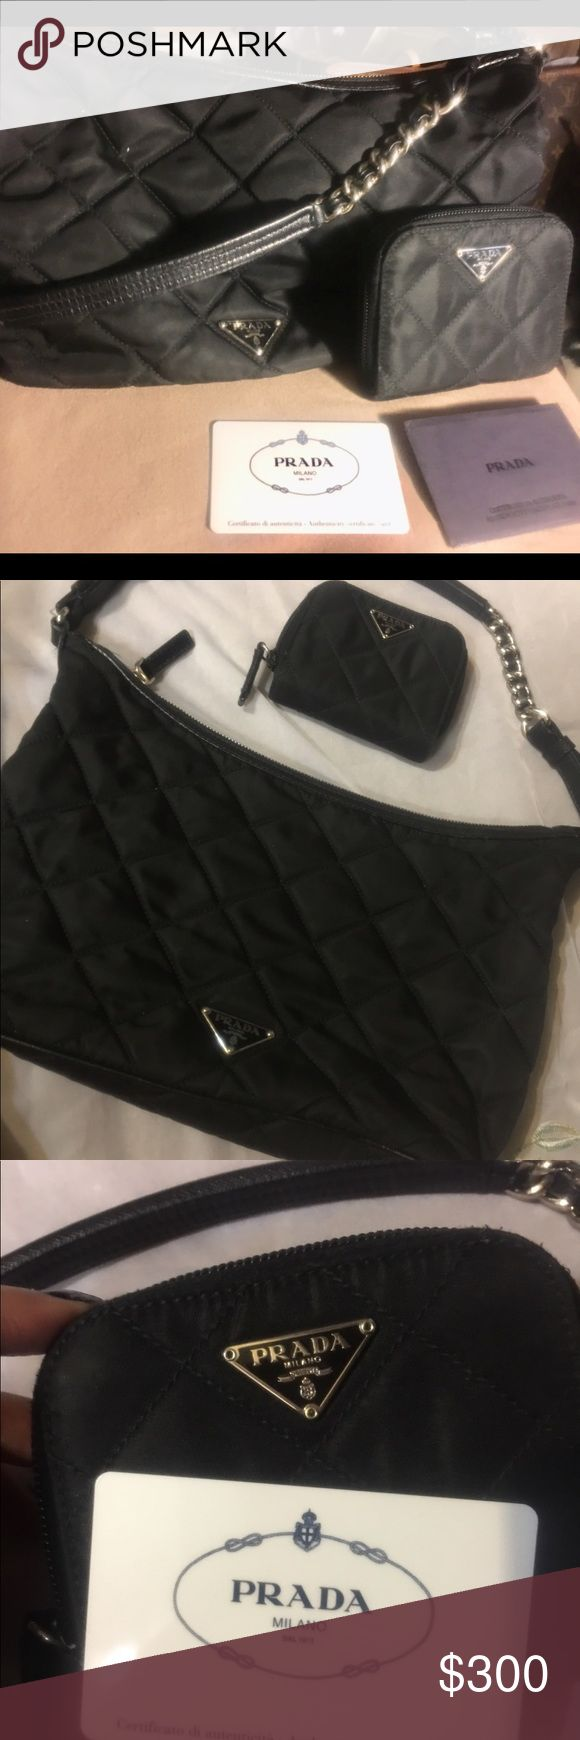 🌺Quilted Prada purse and matching wallet🌺 💯 authentic 🌺Quilted prada purse with matching wallet In excellent condition. No rips. Zippered pocket on inside purse shows the little white tag that is on all real prada. Authentication card is for the wallet🌺 Prada Bags Shoulder Bags